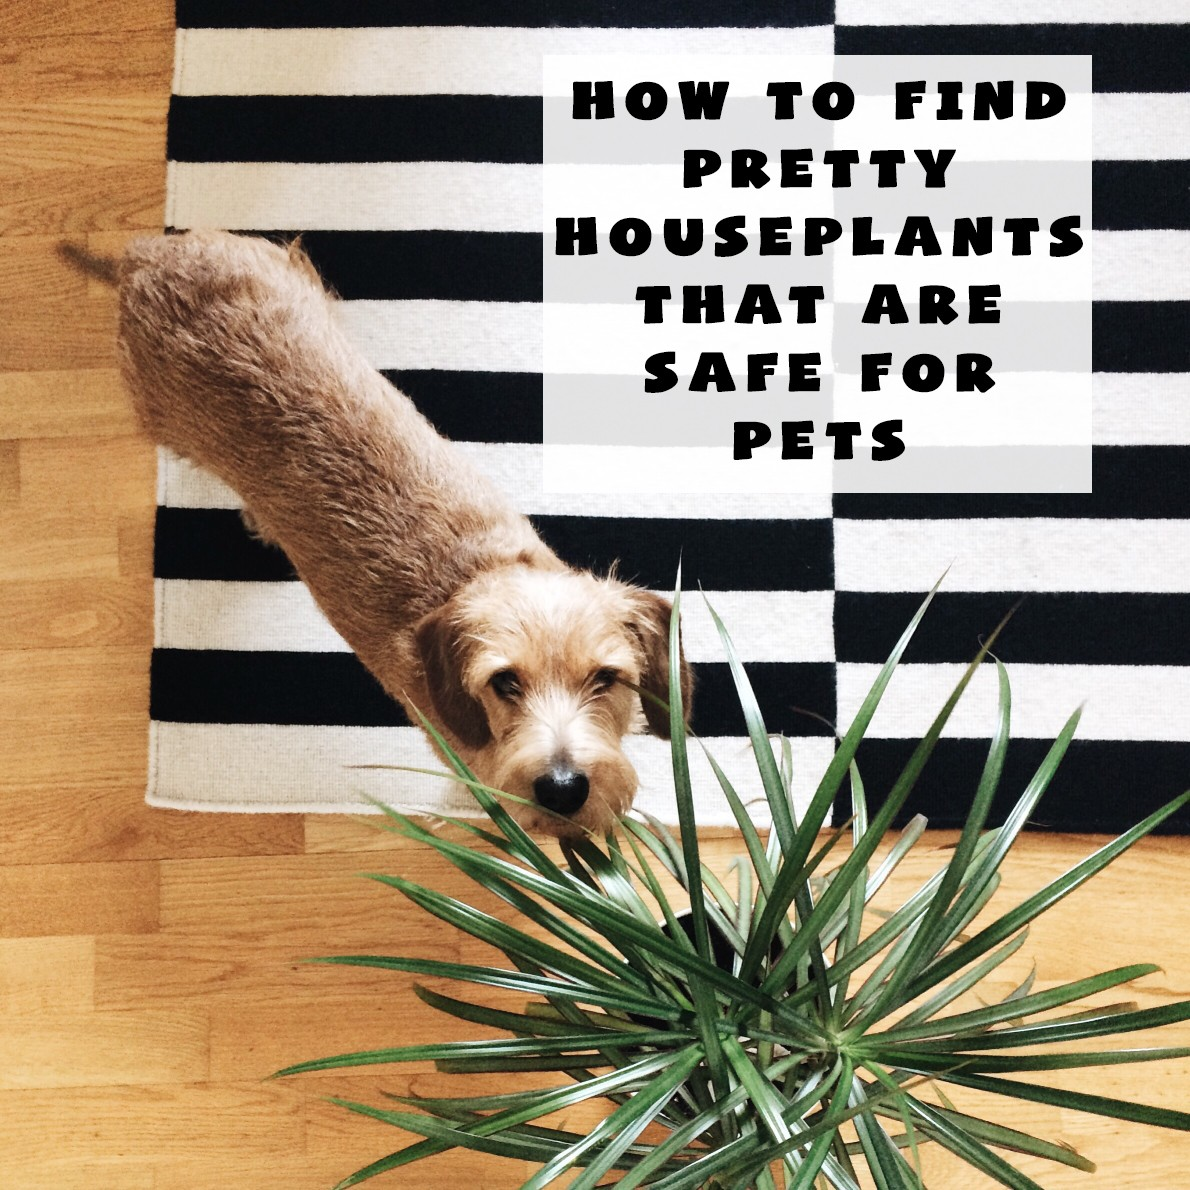 How to Find Pretty Houseplants that are Safe for Pets